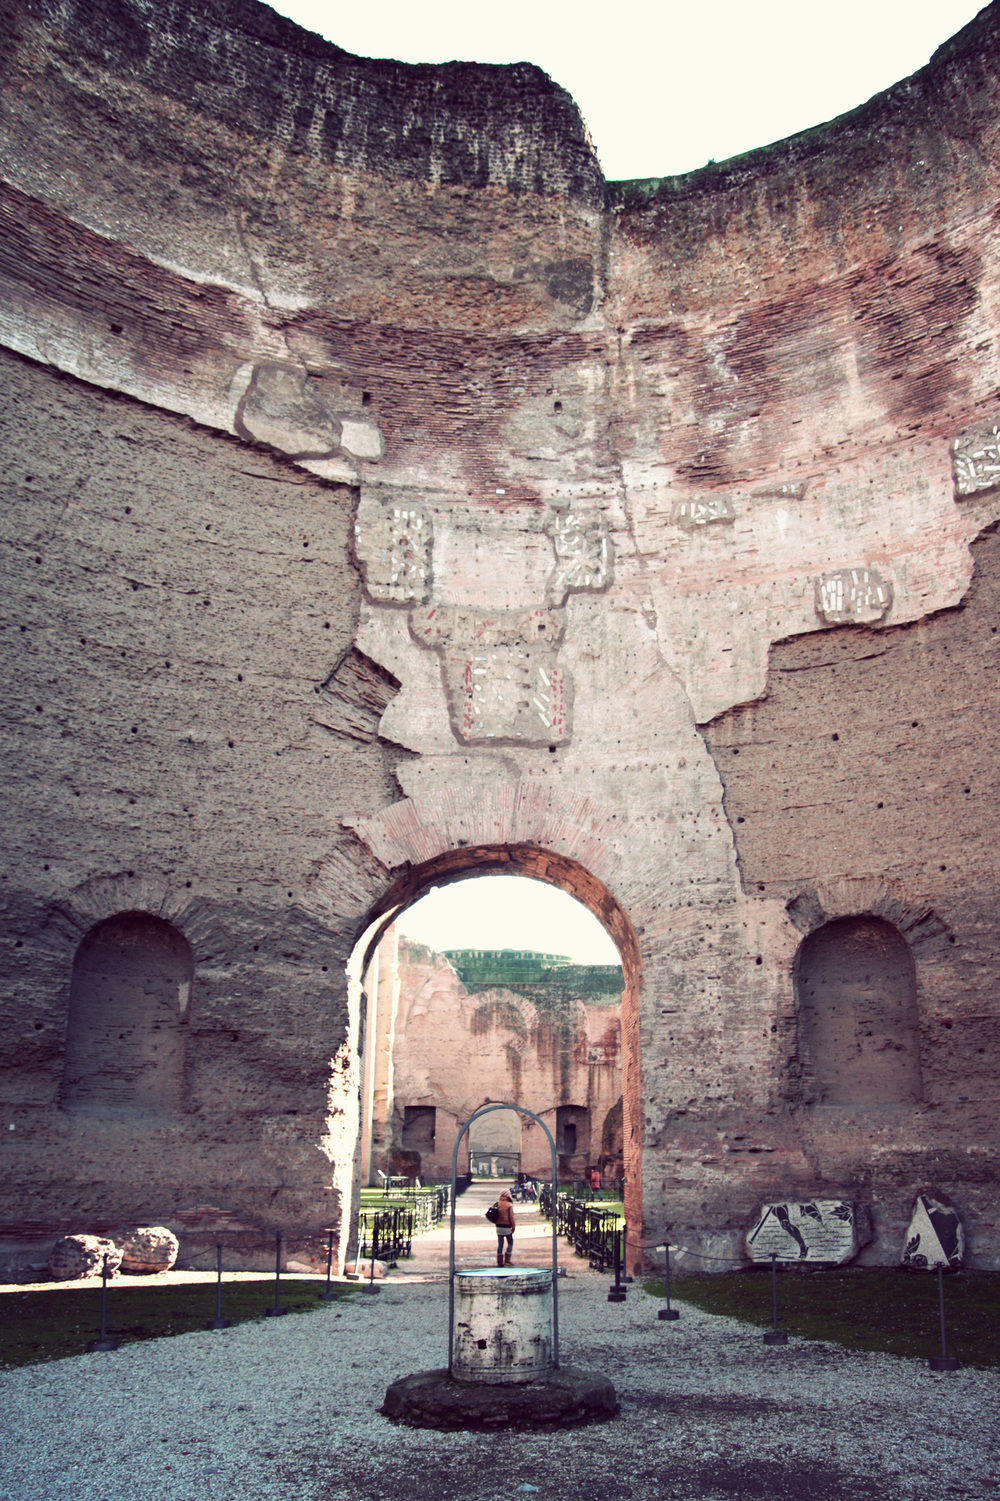 Baths-of-Caracalla_05.jpg